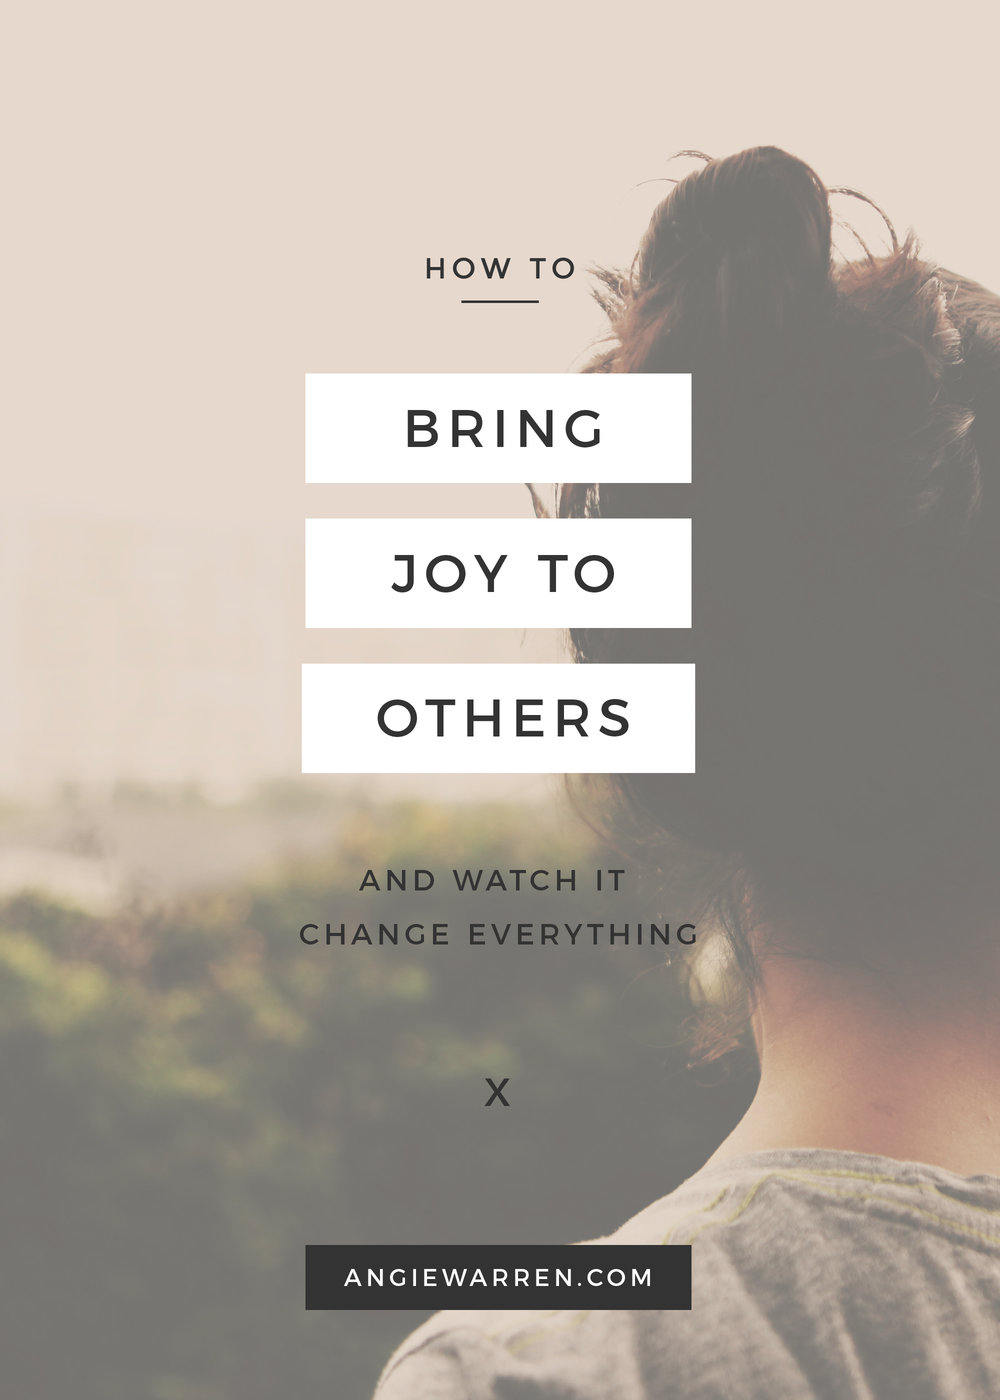 HOW TO BRING JOY TO OTHERS // www.angiewarren.com